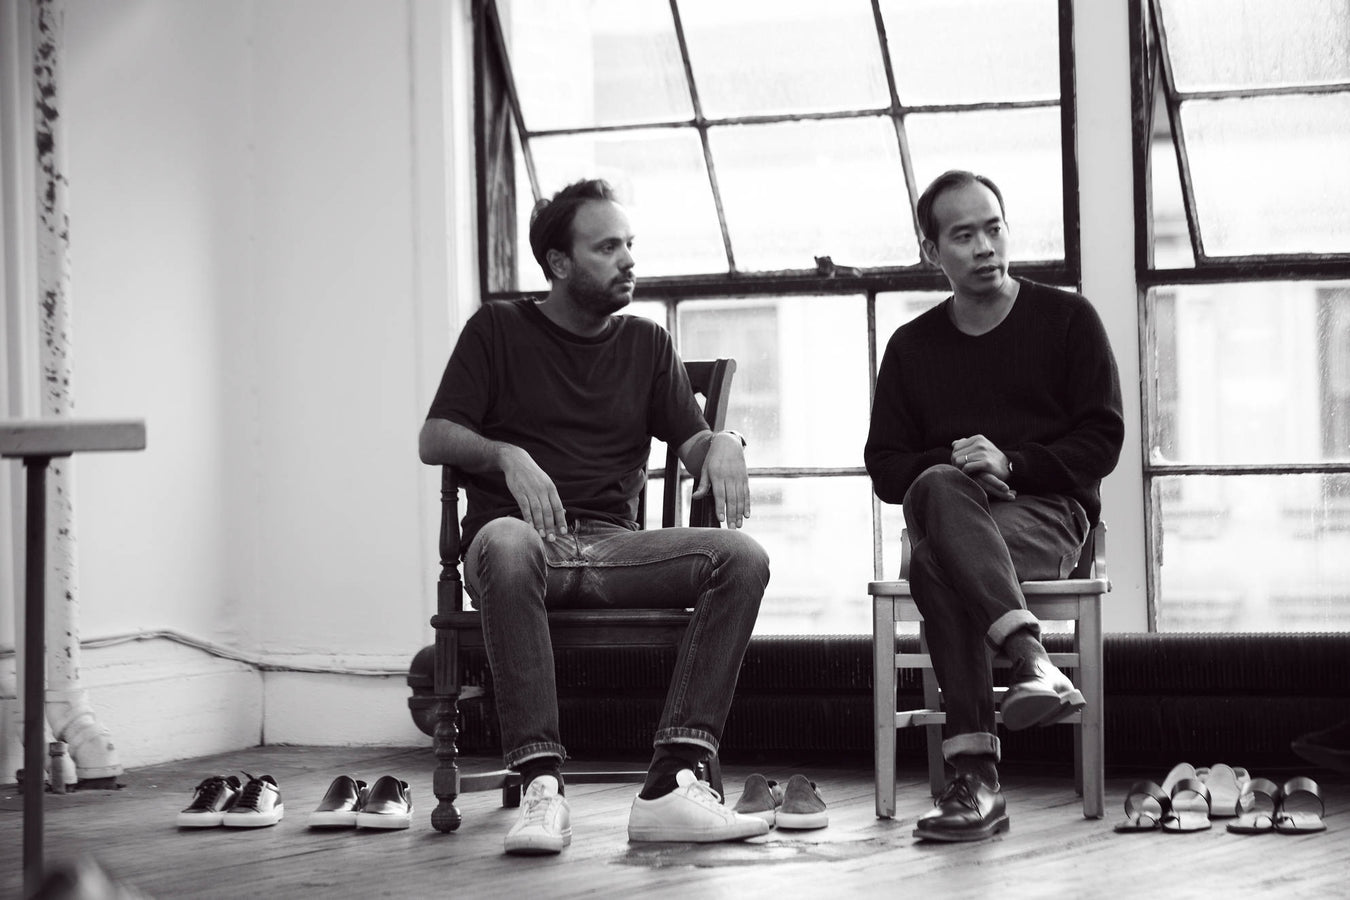 Common Ground: A Conversation with Prathan Poopat and Flavio Girolami